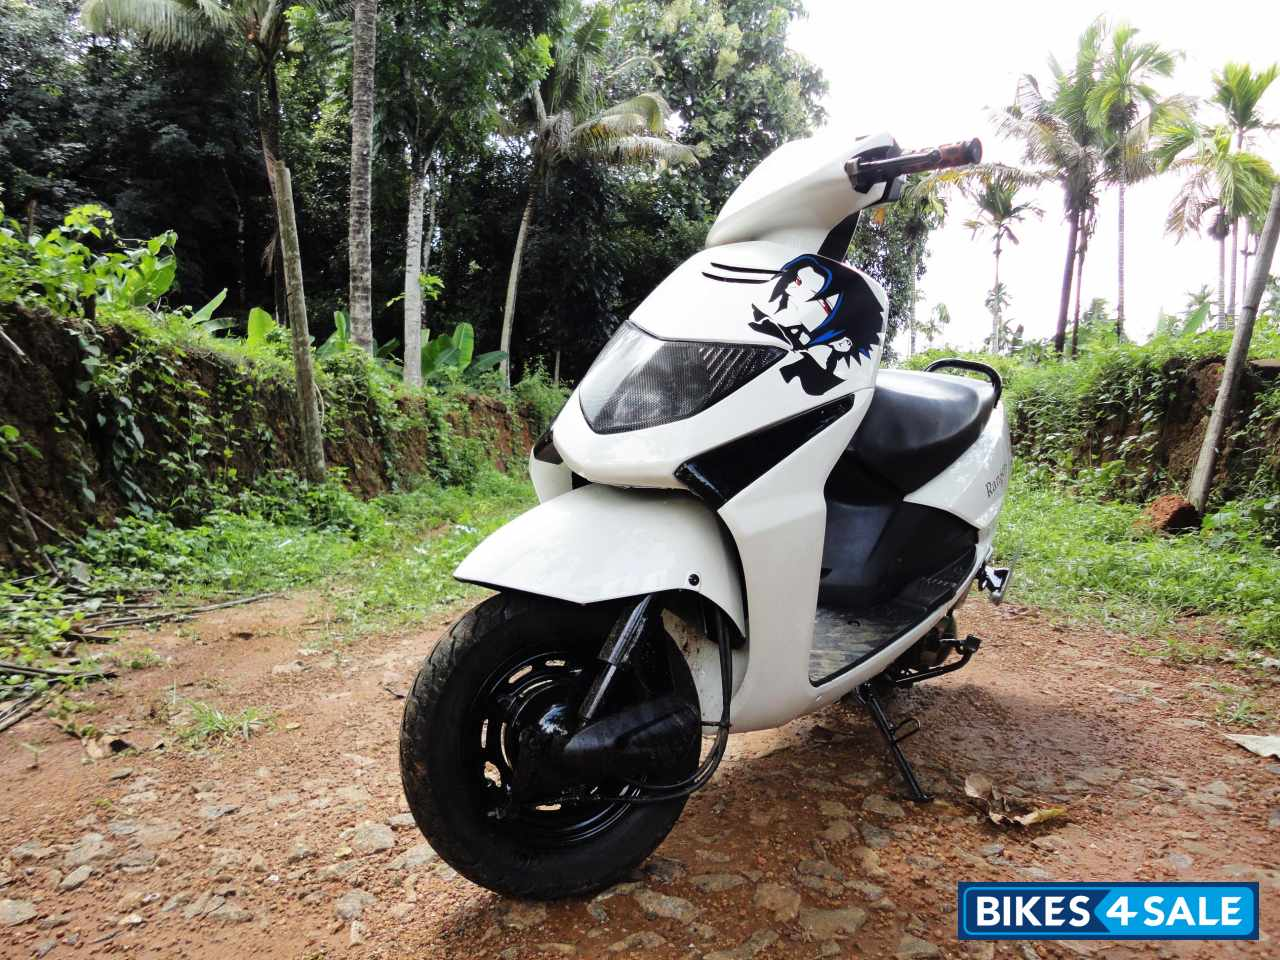 Honda Dio 2014 White Modified | www.imgkid.com - The Image ...